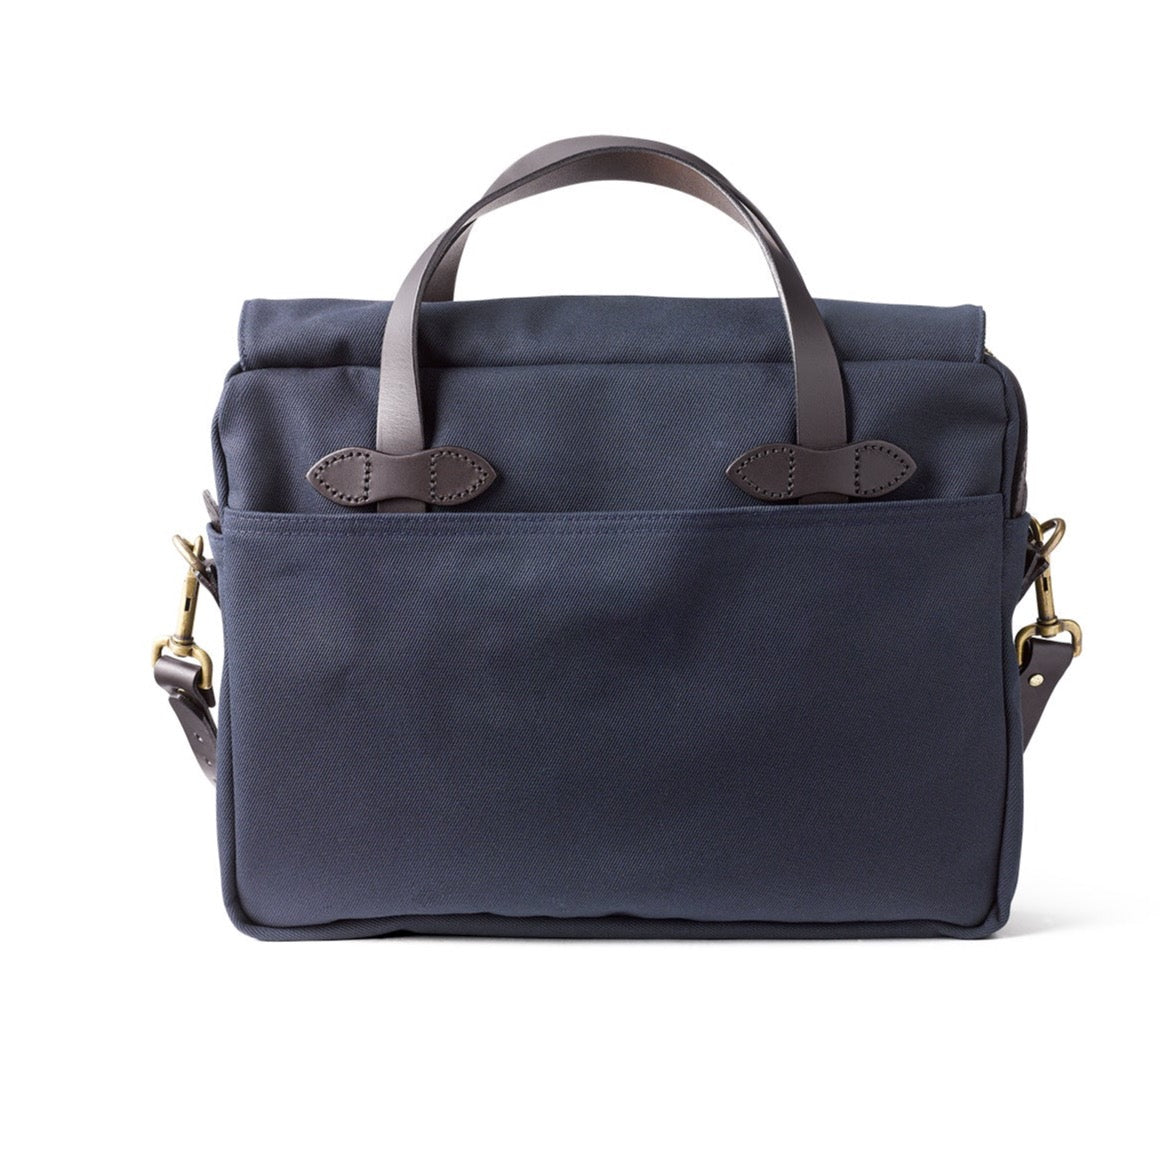 Filson - Bag, Original Briefcase, NAVY